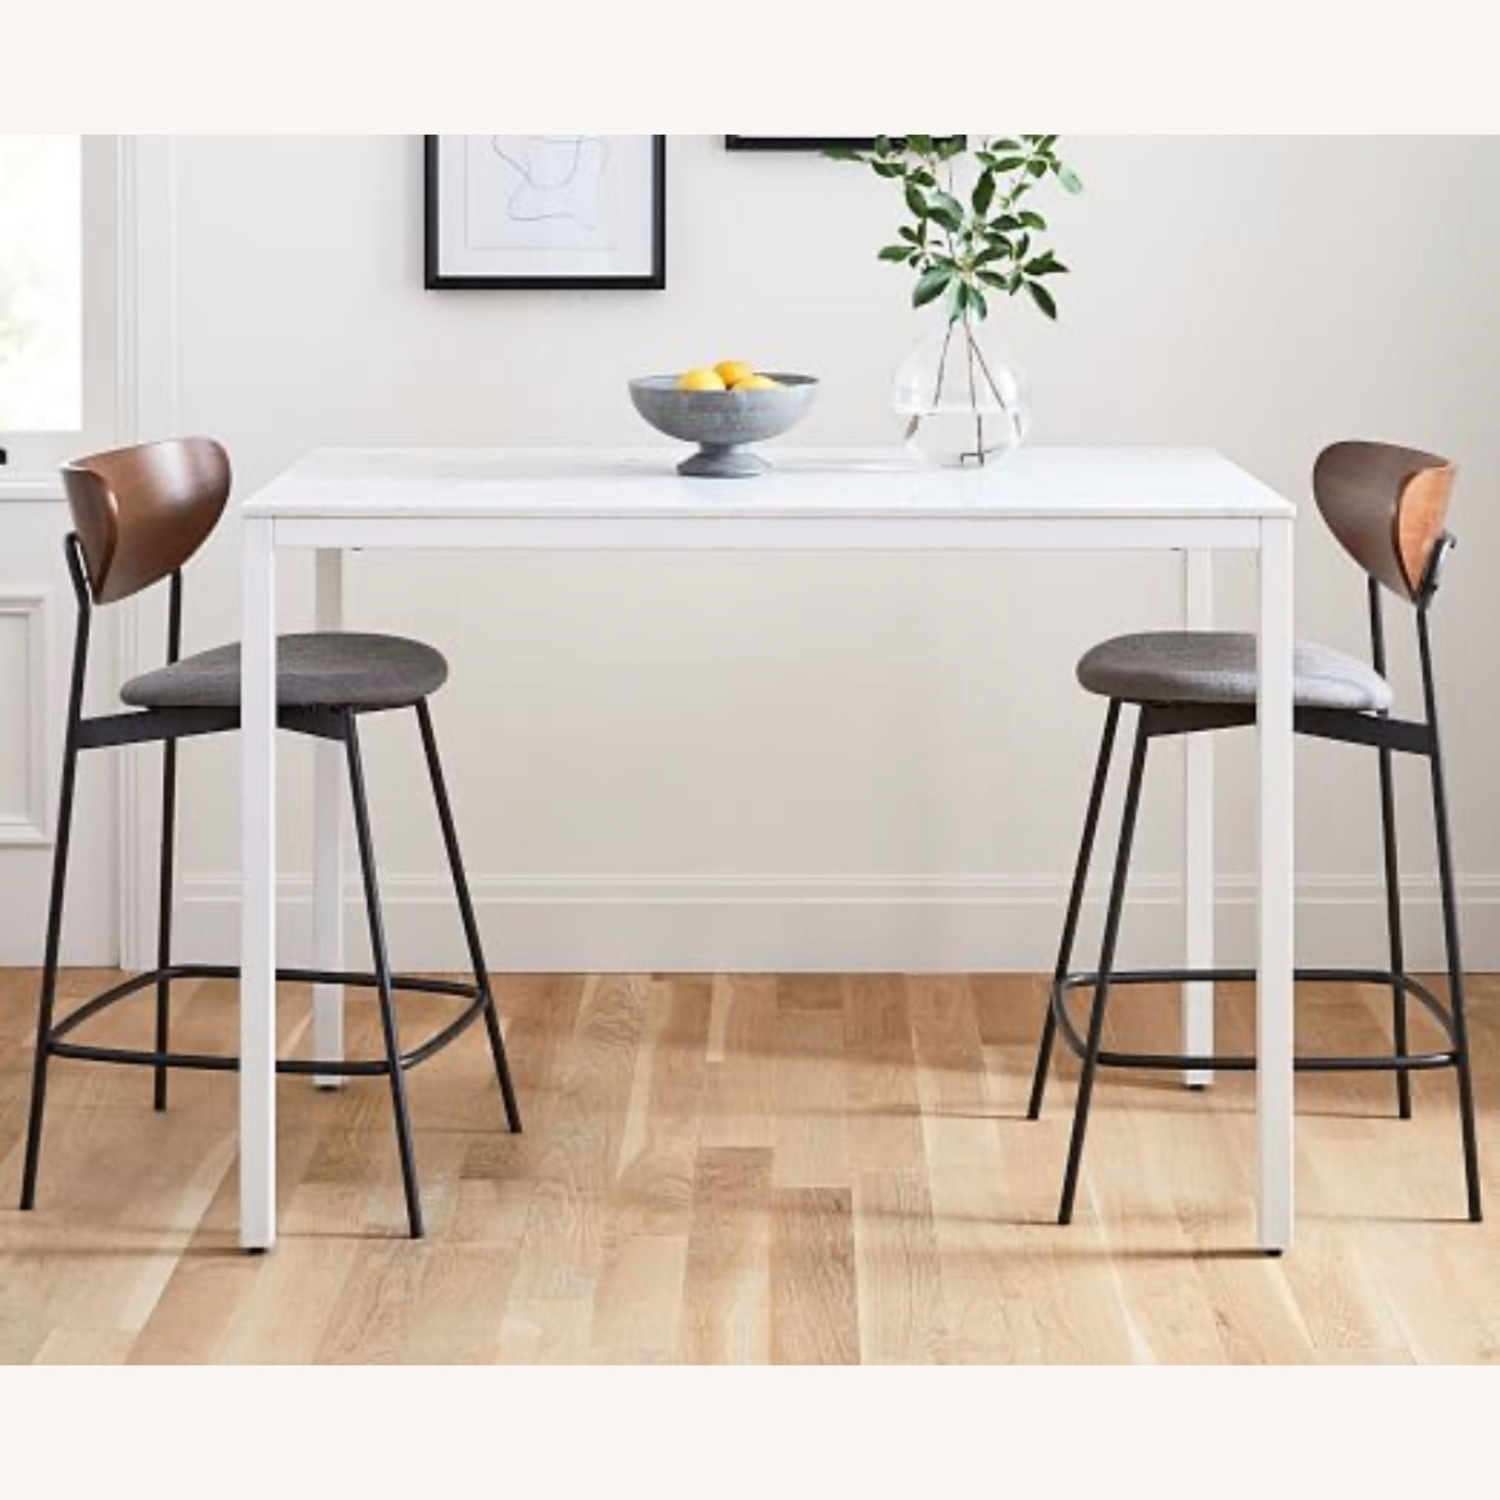 West Elm Frame Counter Table White Marble - image-3